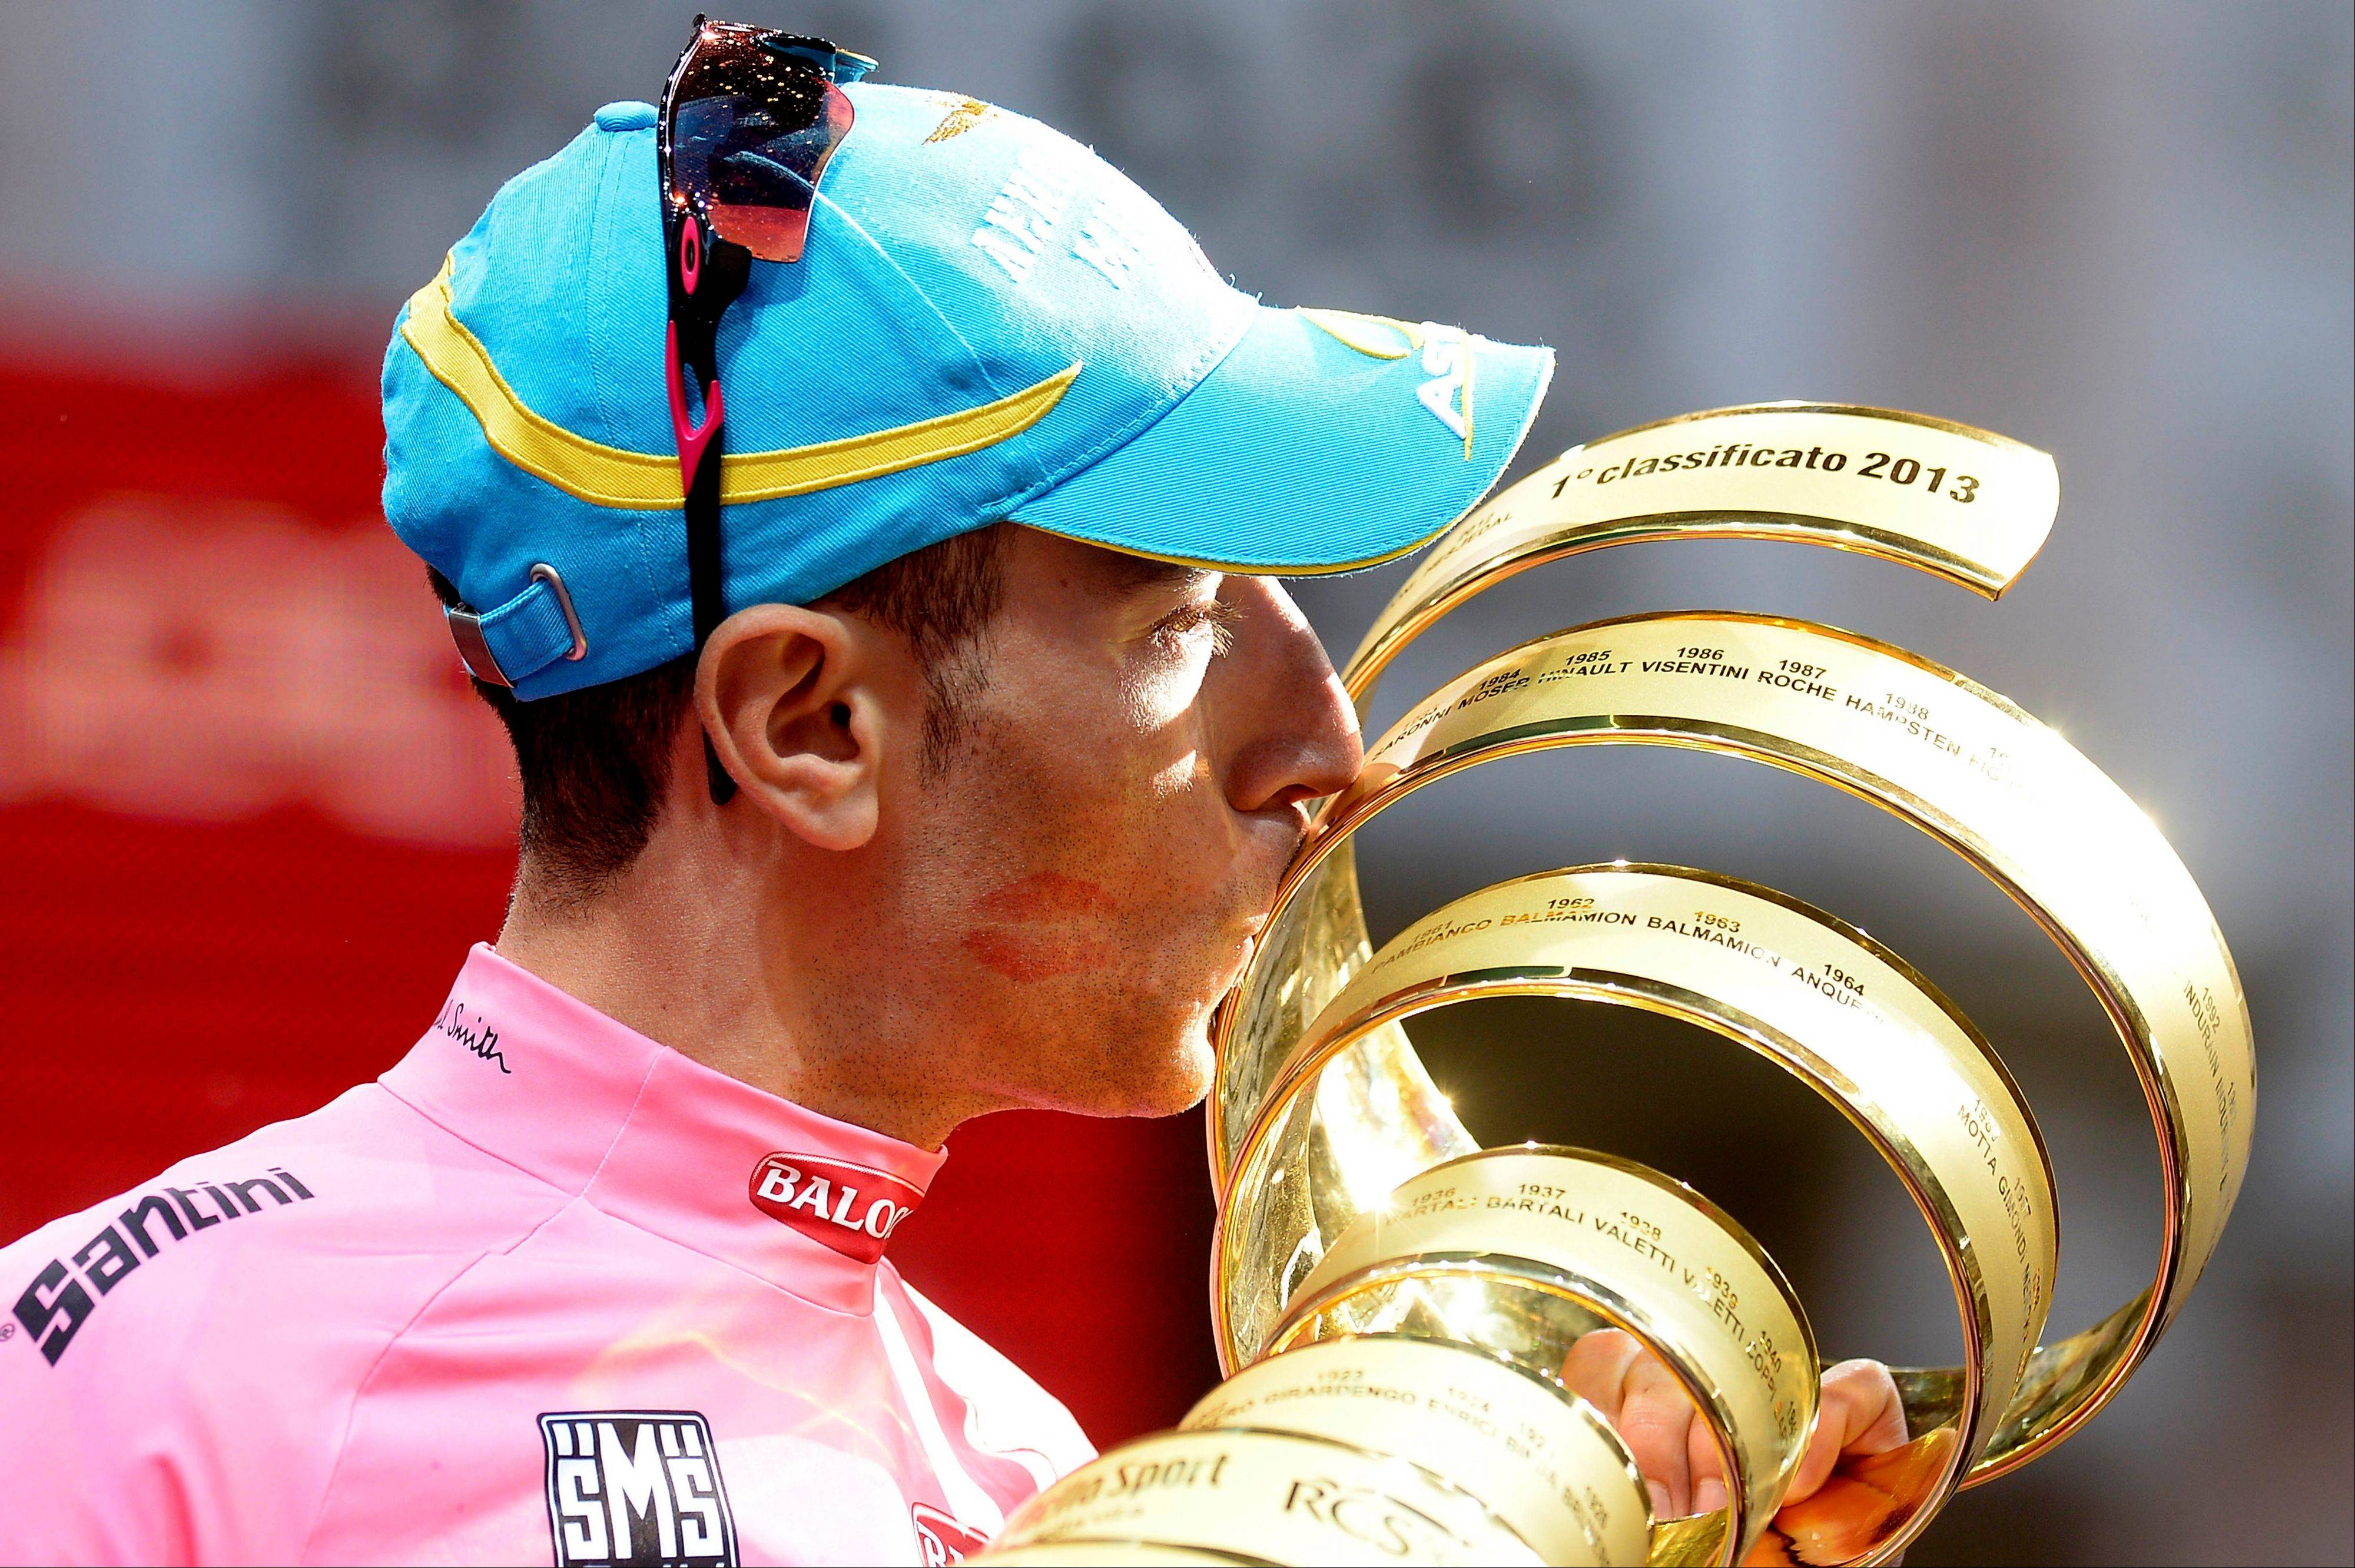 Italy's Vincenzo Nibali kisses the trophy after winning the Giro d'Italia in May. Nibali will be seeking his second major title of the year when the mountain-heavy Spanish Vuelta begins on Saturday.